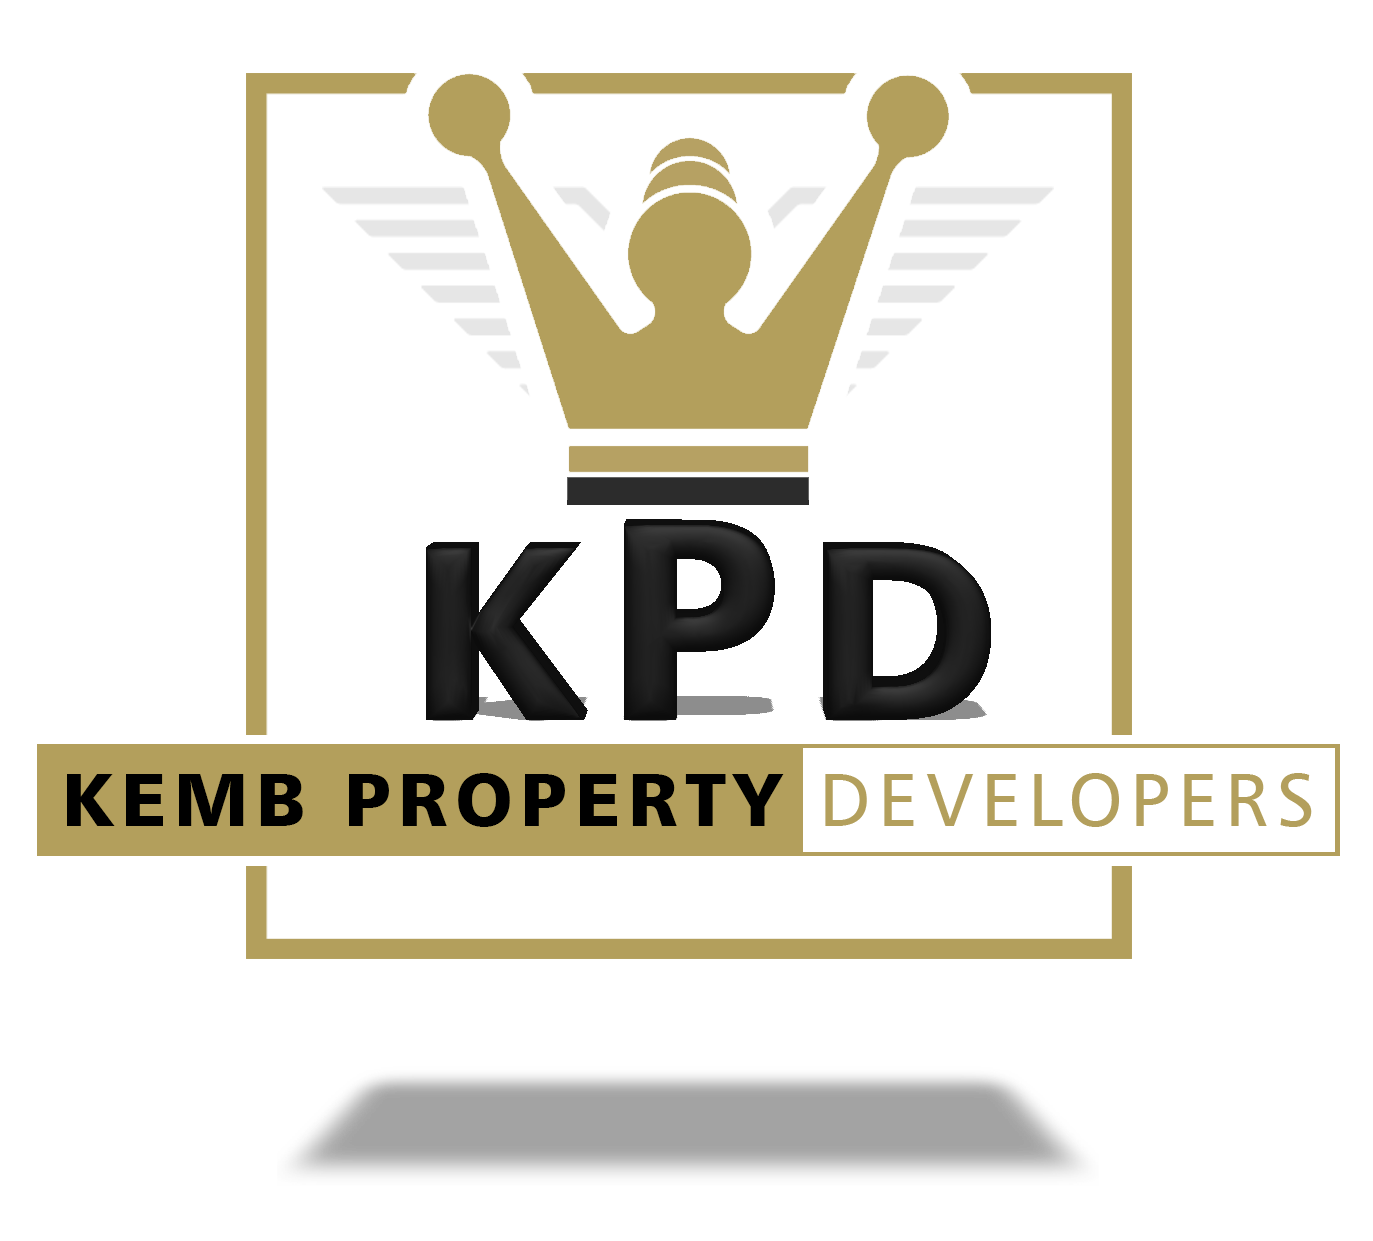 Kemb-Property-Developers-1.png